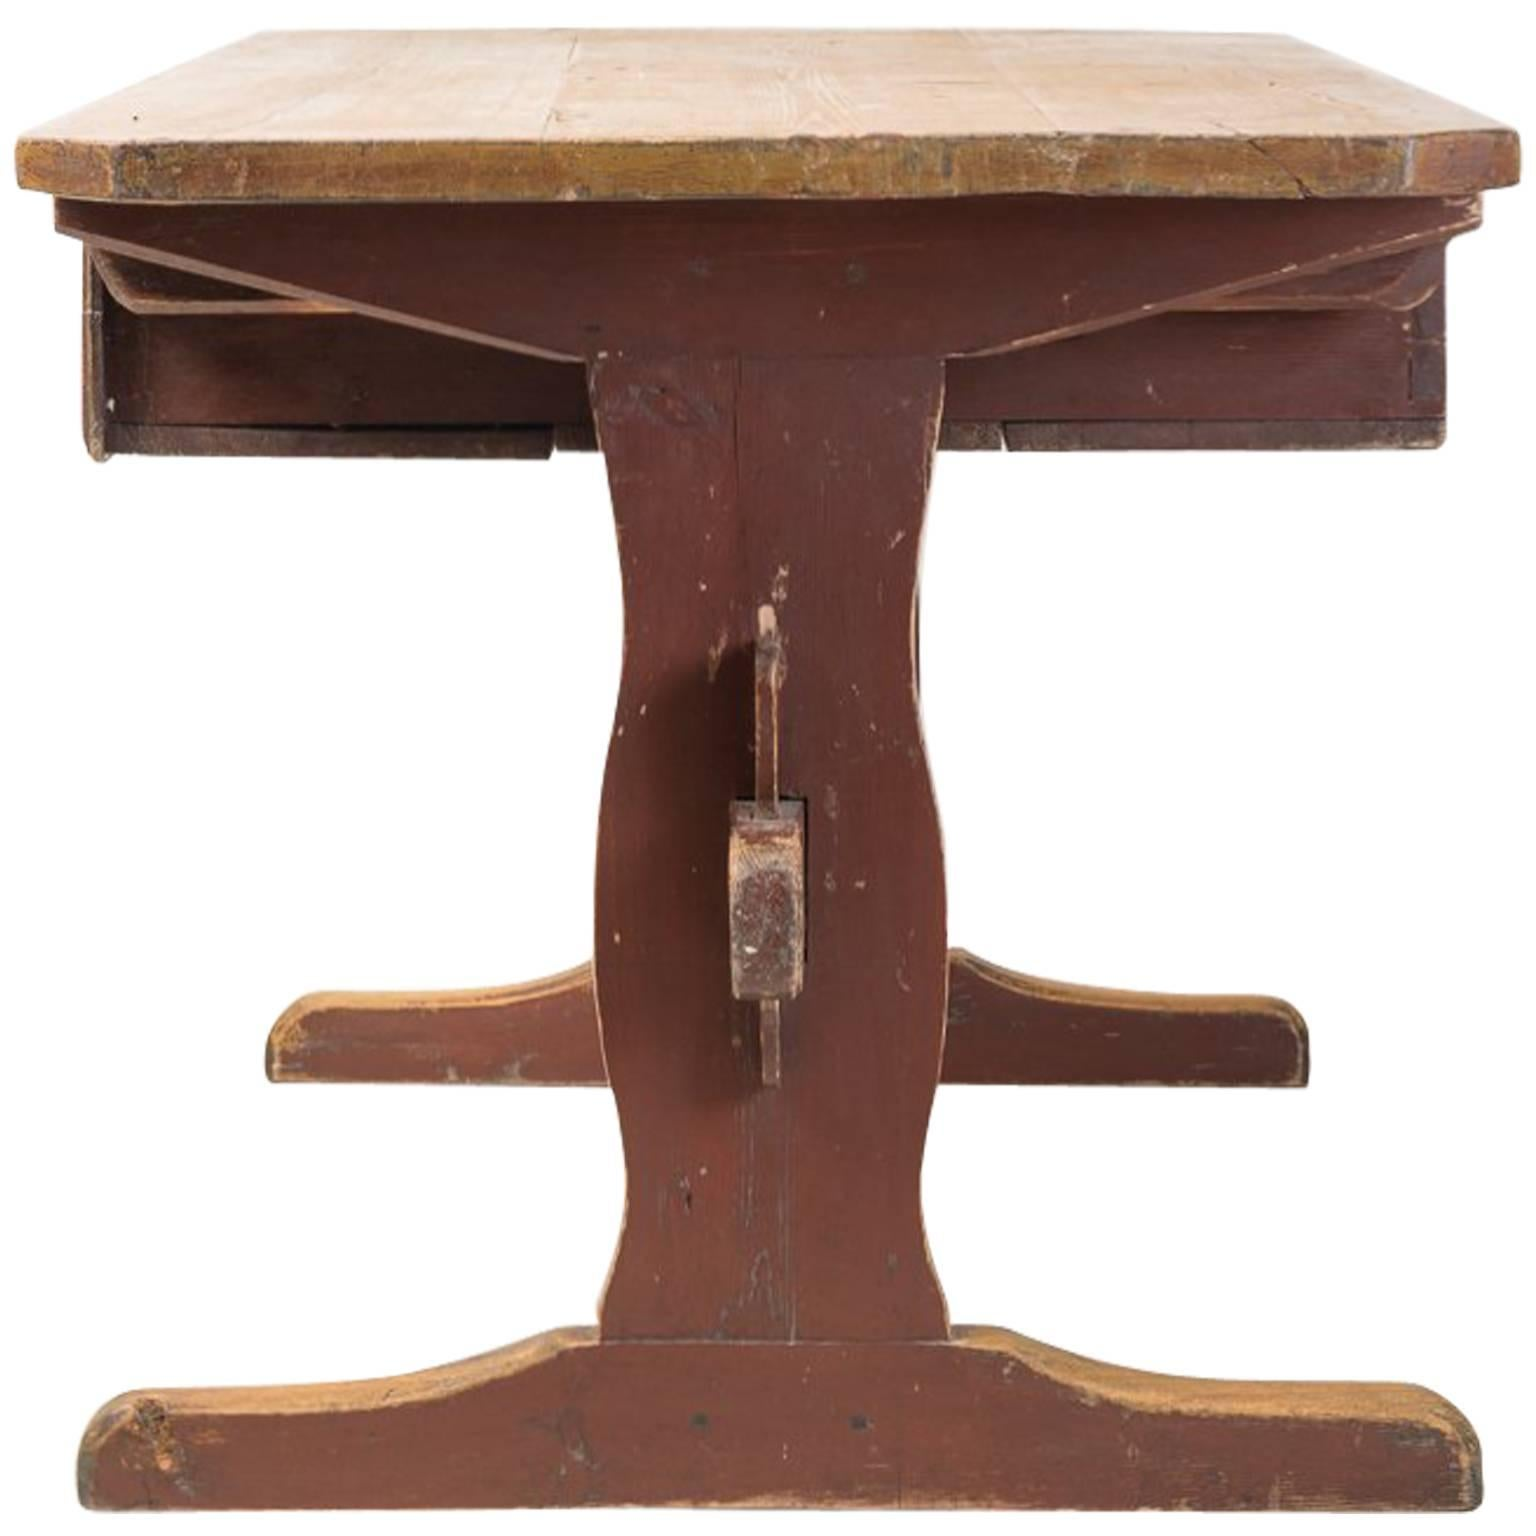 Early 19th Century Painted Swedish Folk Art Trestle Table with Original Paint